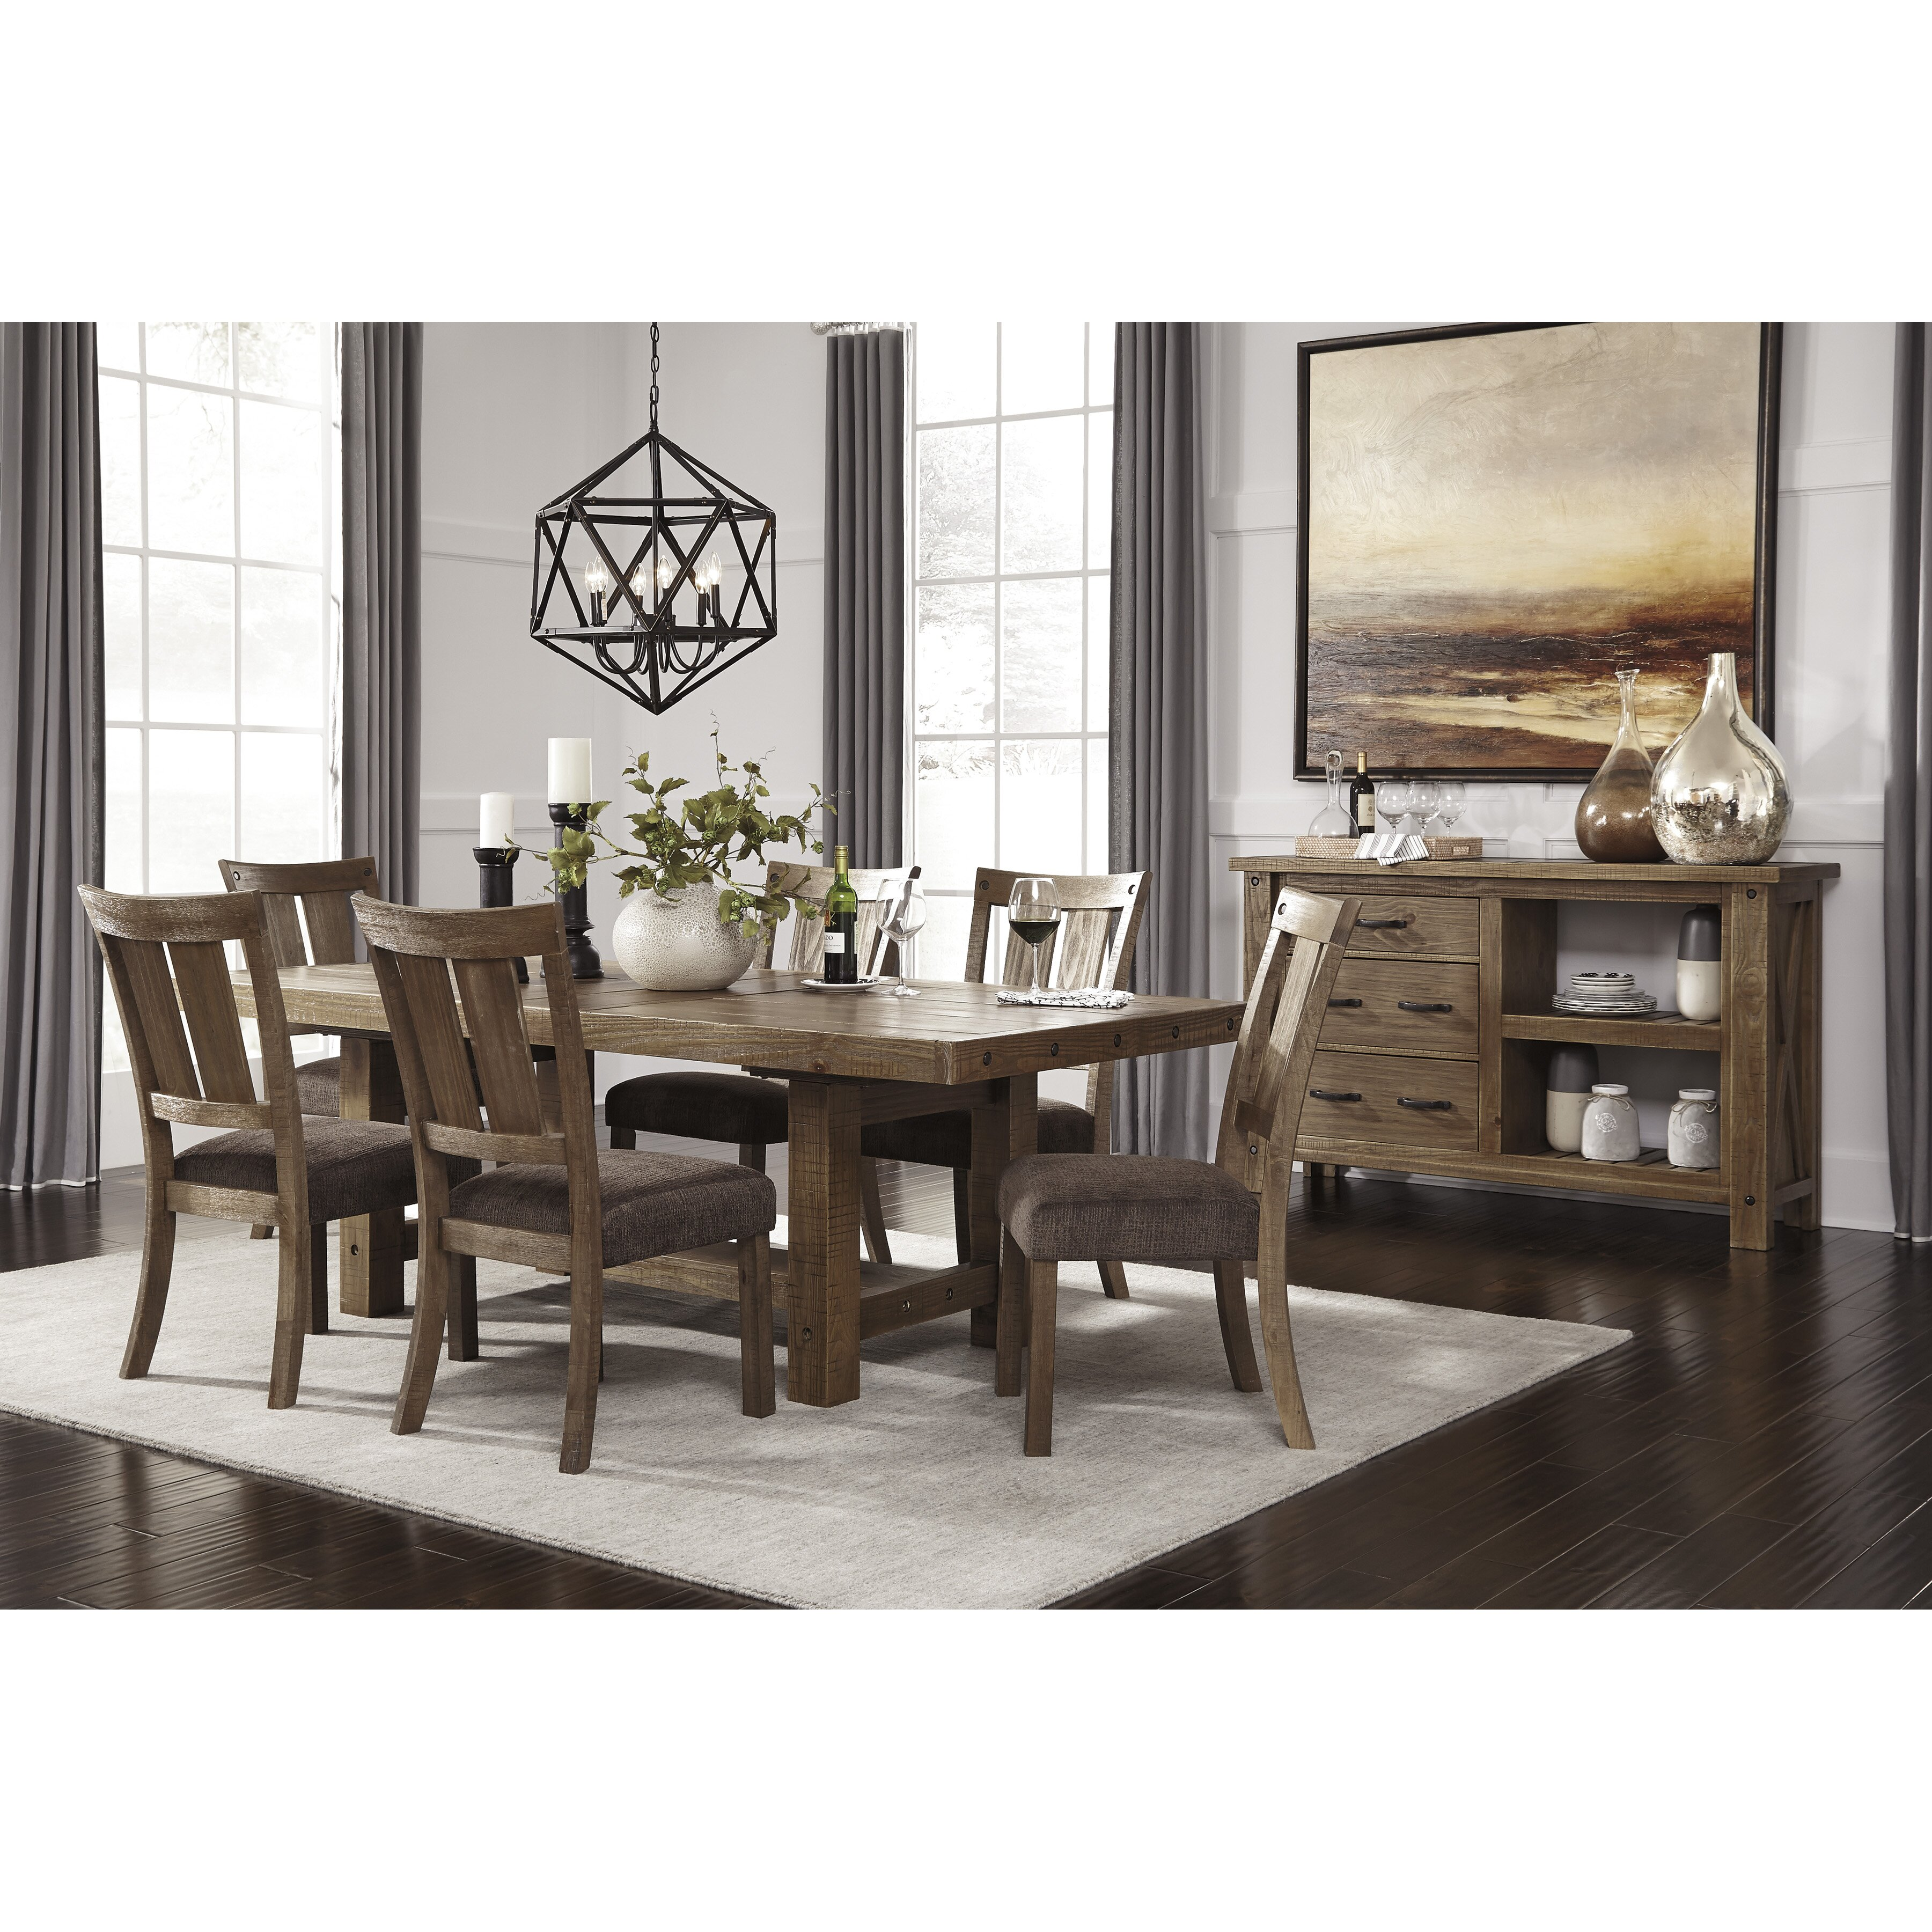 Ashley Dining Tables: Signature Design By Ashley Extendable Dining Table